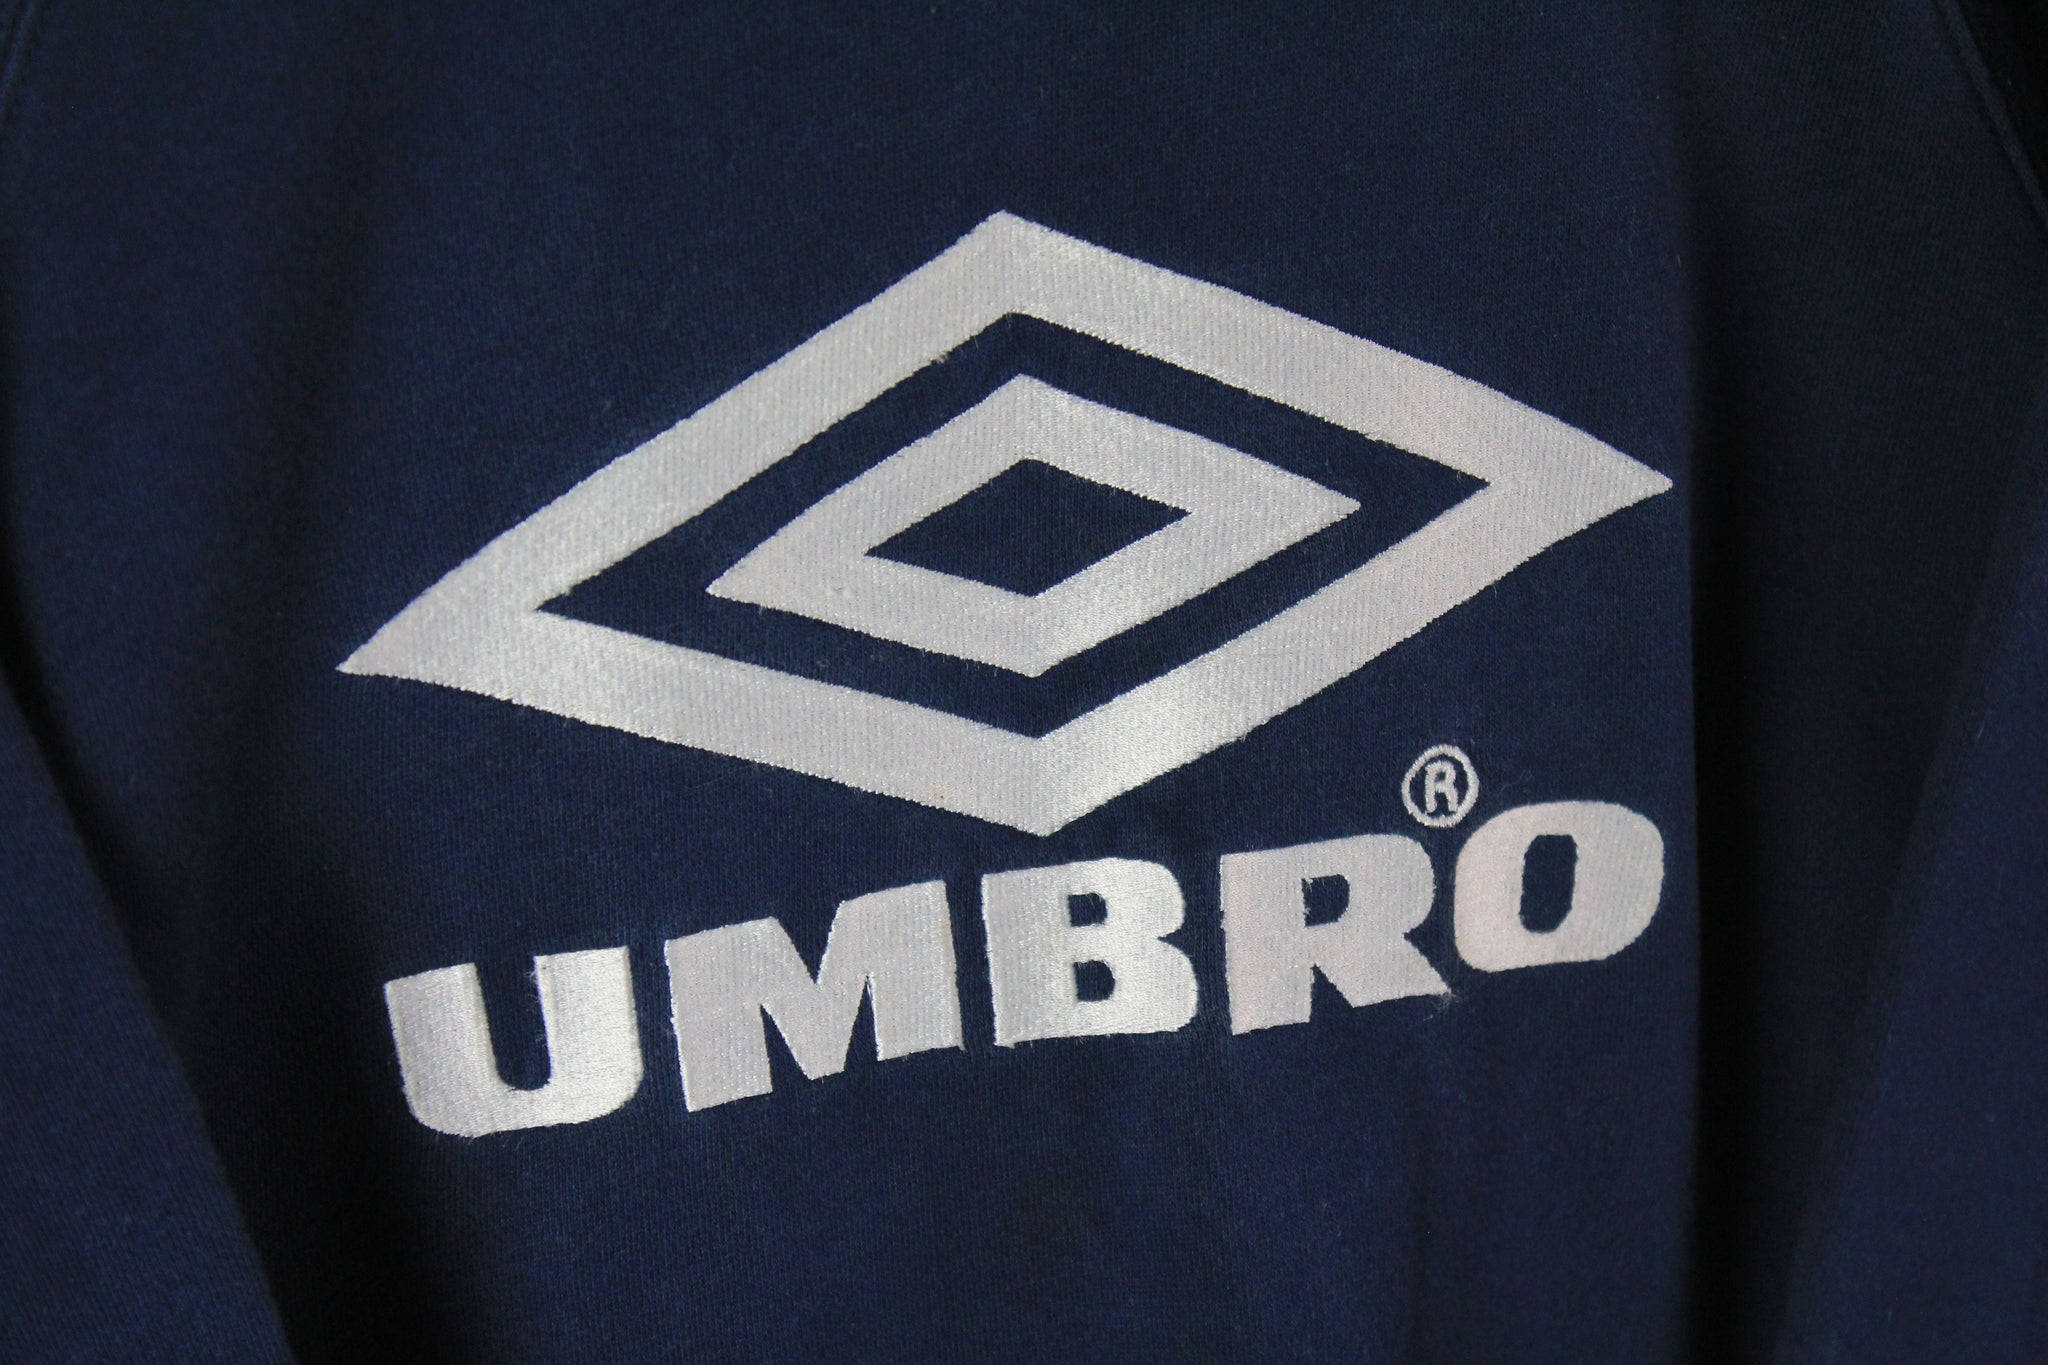 Vintage Umbro Sweatshirt Small / Medium